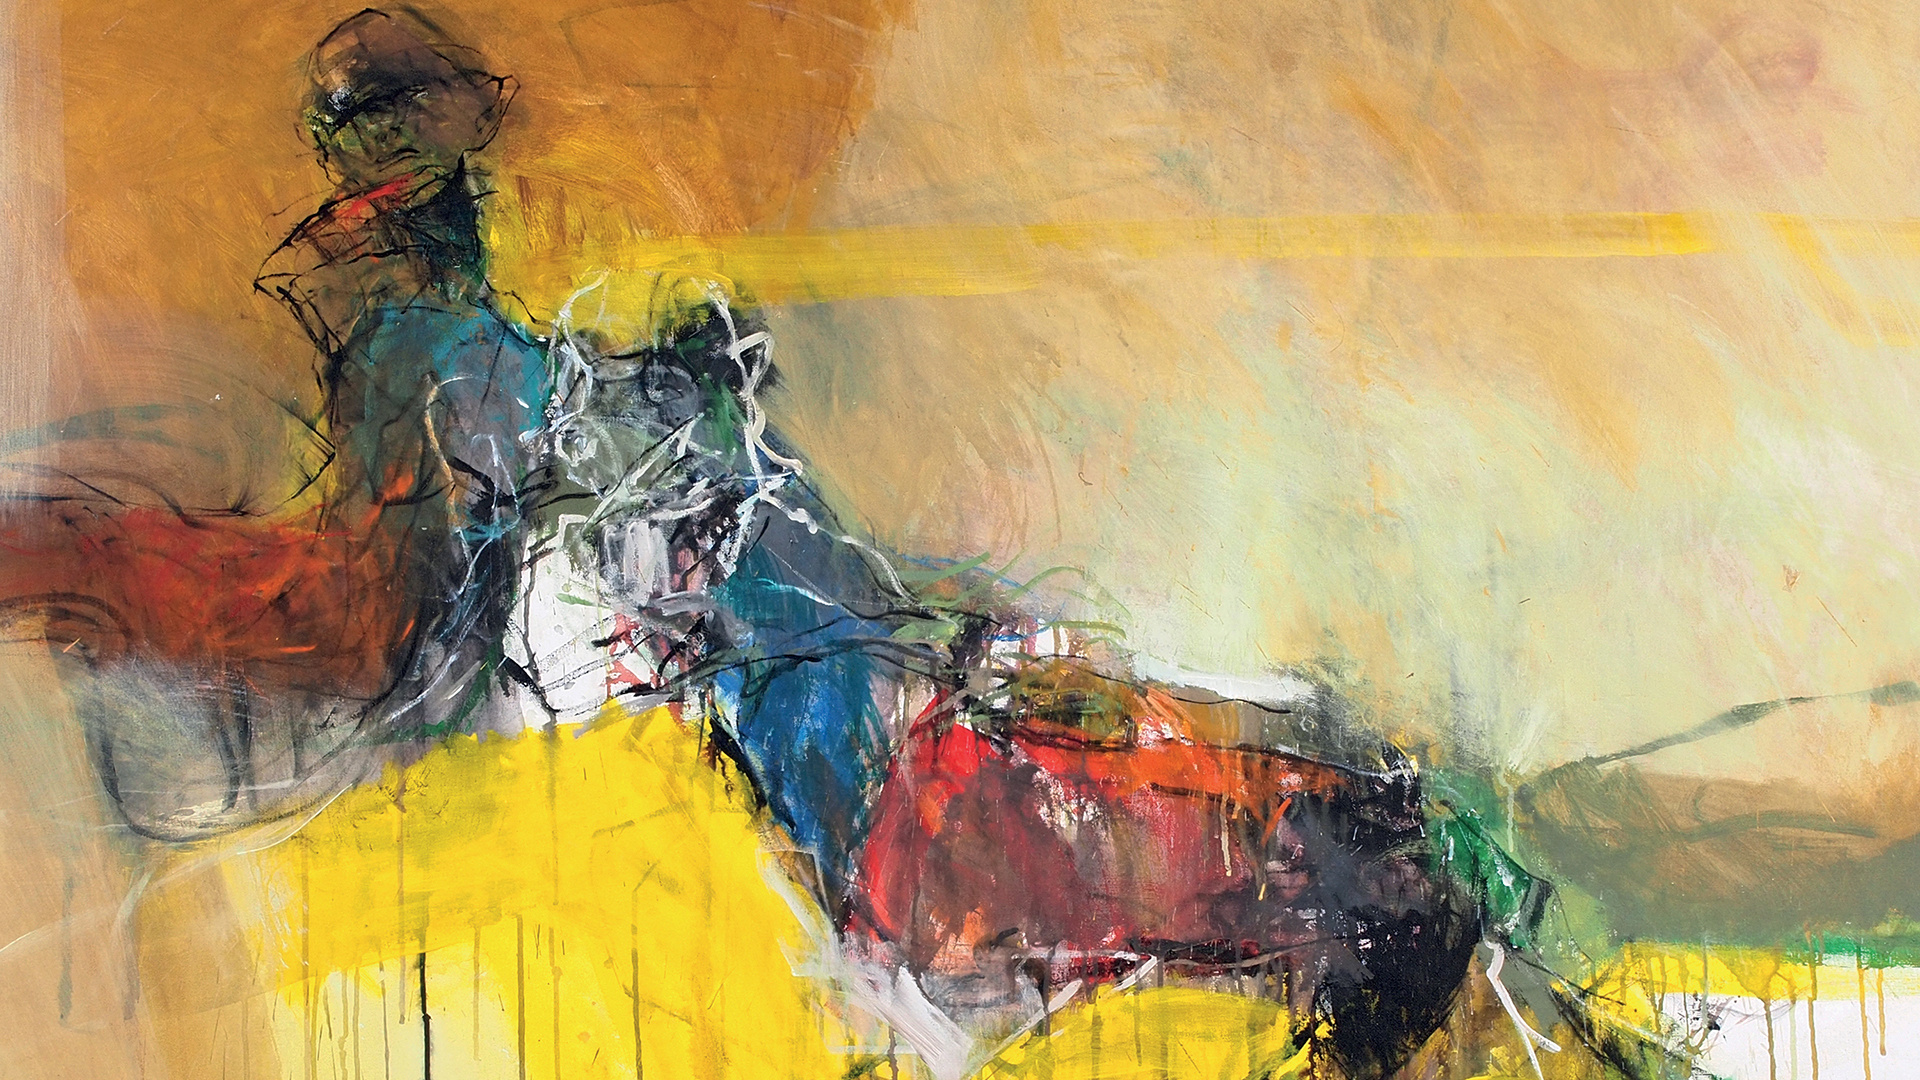 A crop of one of Adel Dauood's dramatic art works.